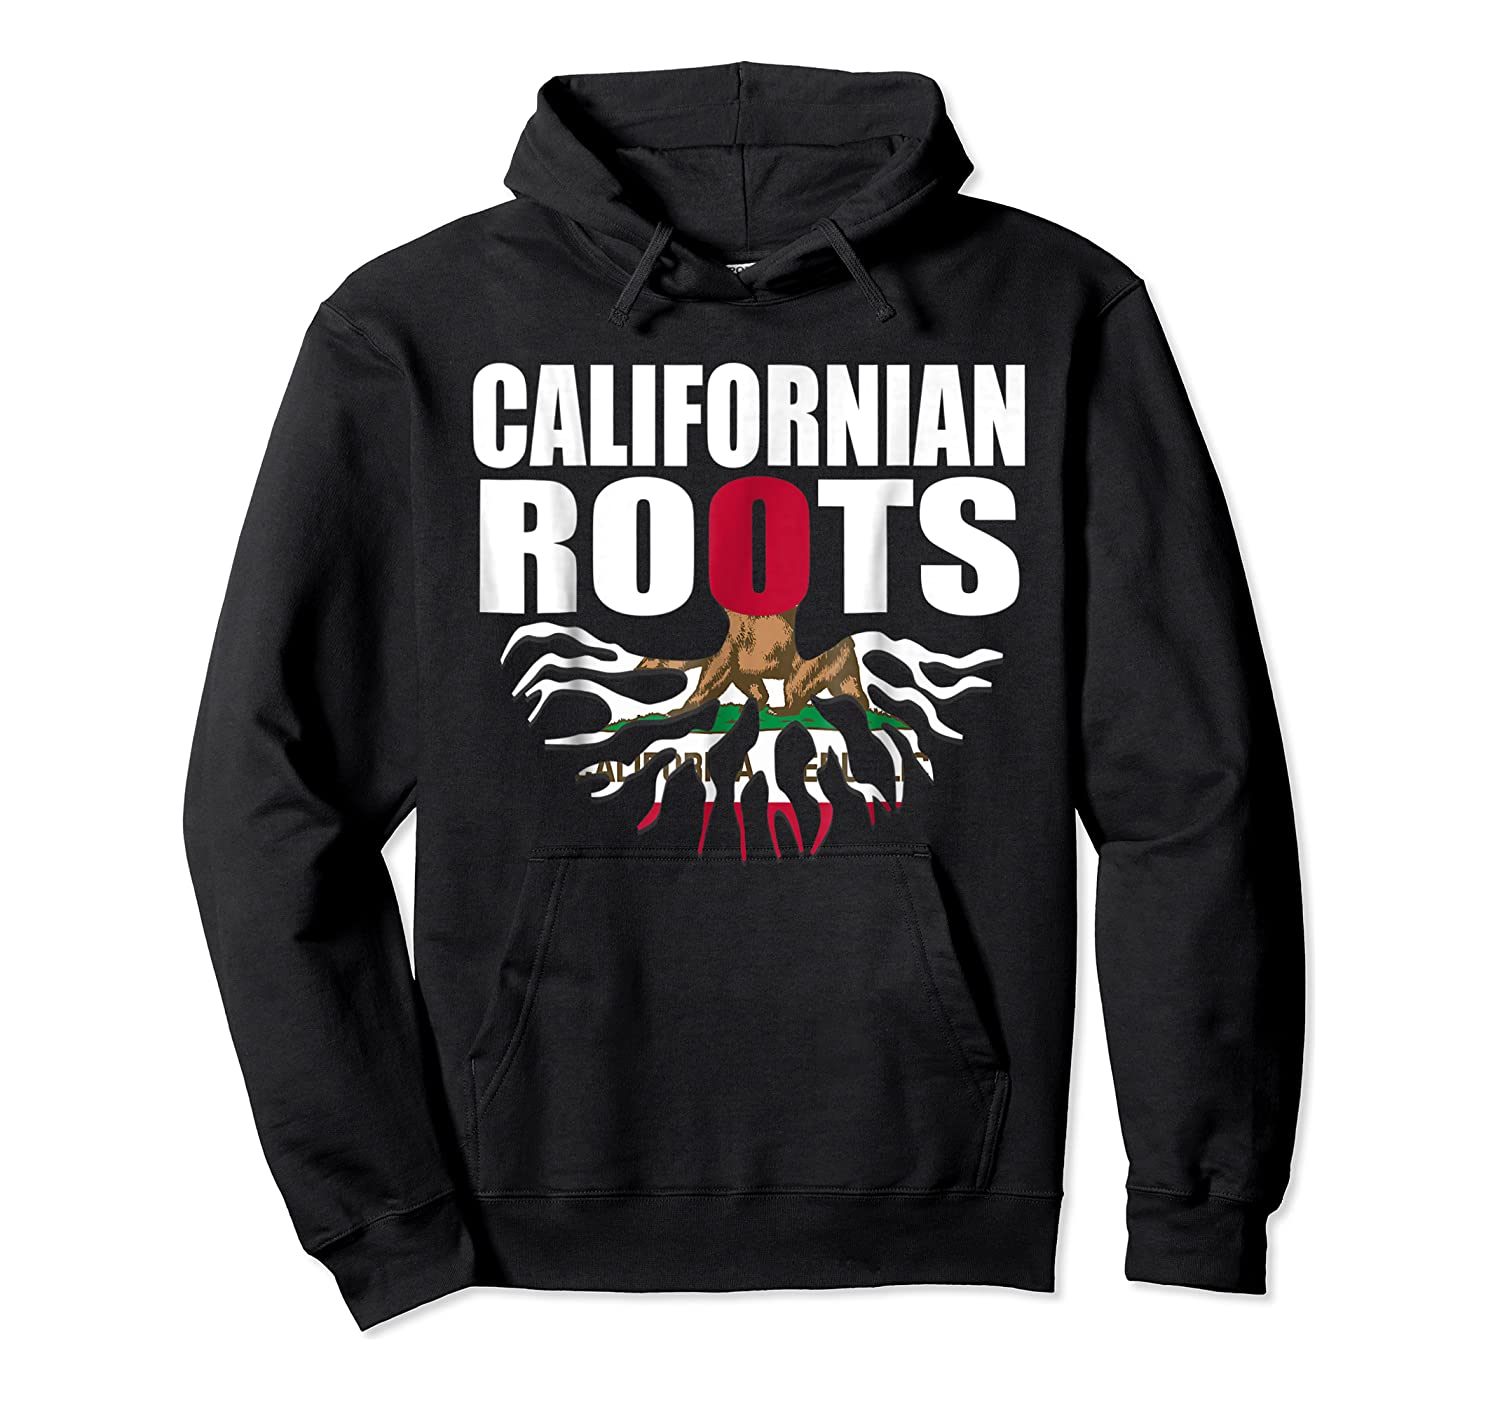 Storecastle Californian Roots California Pride Gift Shirts Unisex Pullover Hoodie